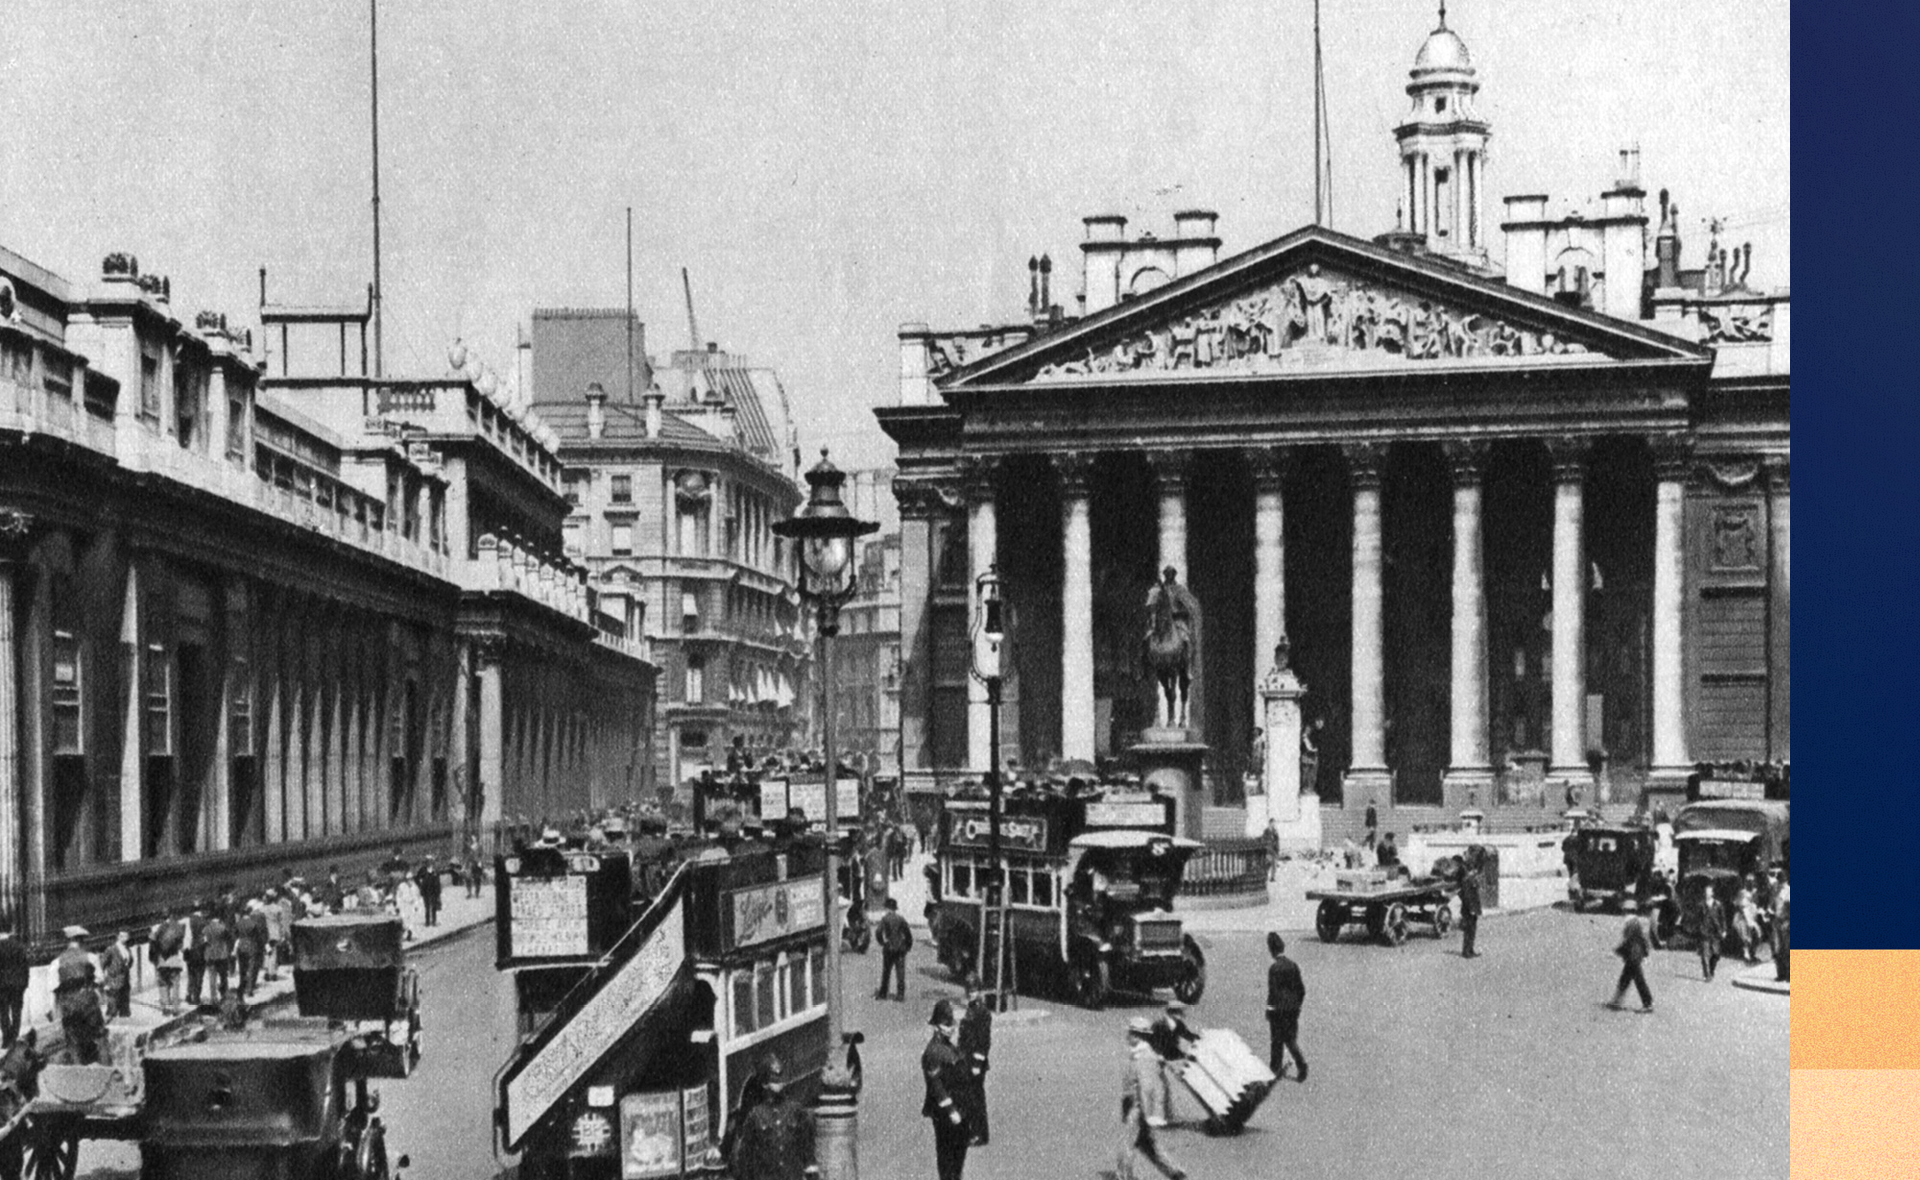 The third (and current) iteration of The Royal Exchange was opened in 1844 by Queen Victoria